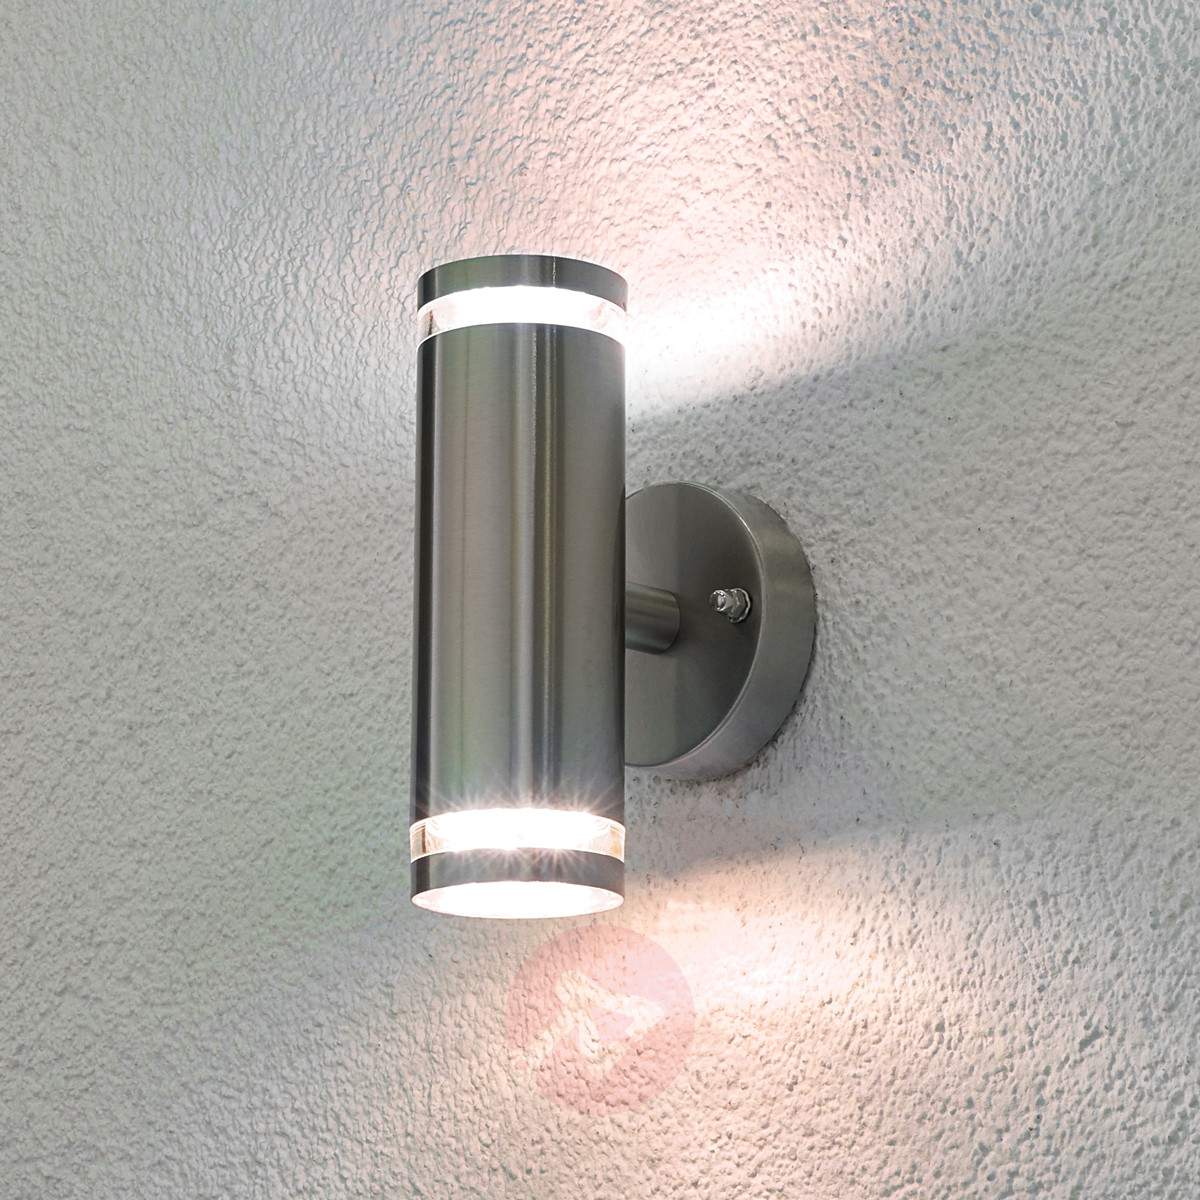 How To Fit Outdoor Wall Lights : Outdoor led wall lights - 10 reasons to install Warisan Lighting